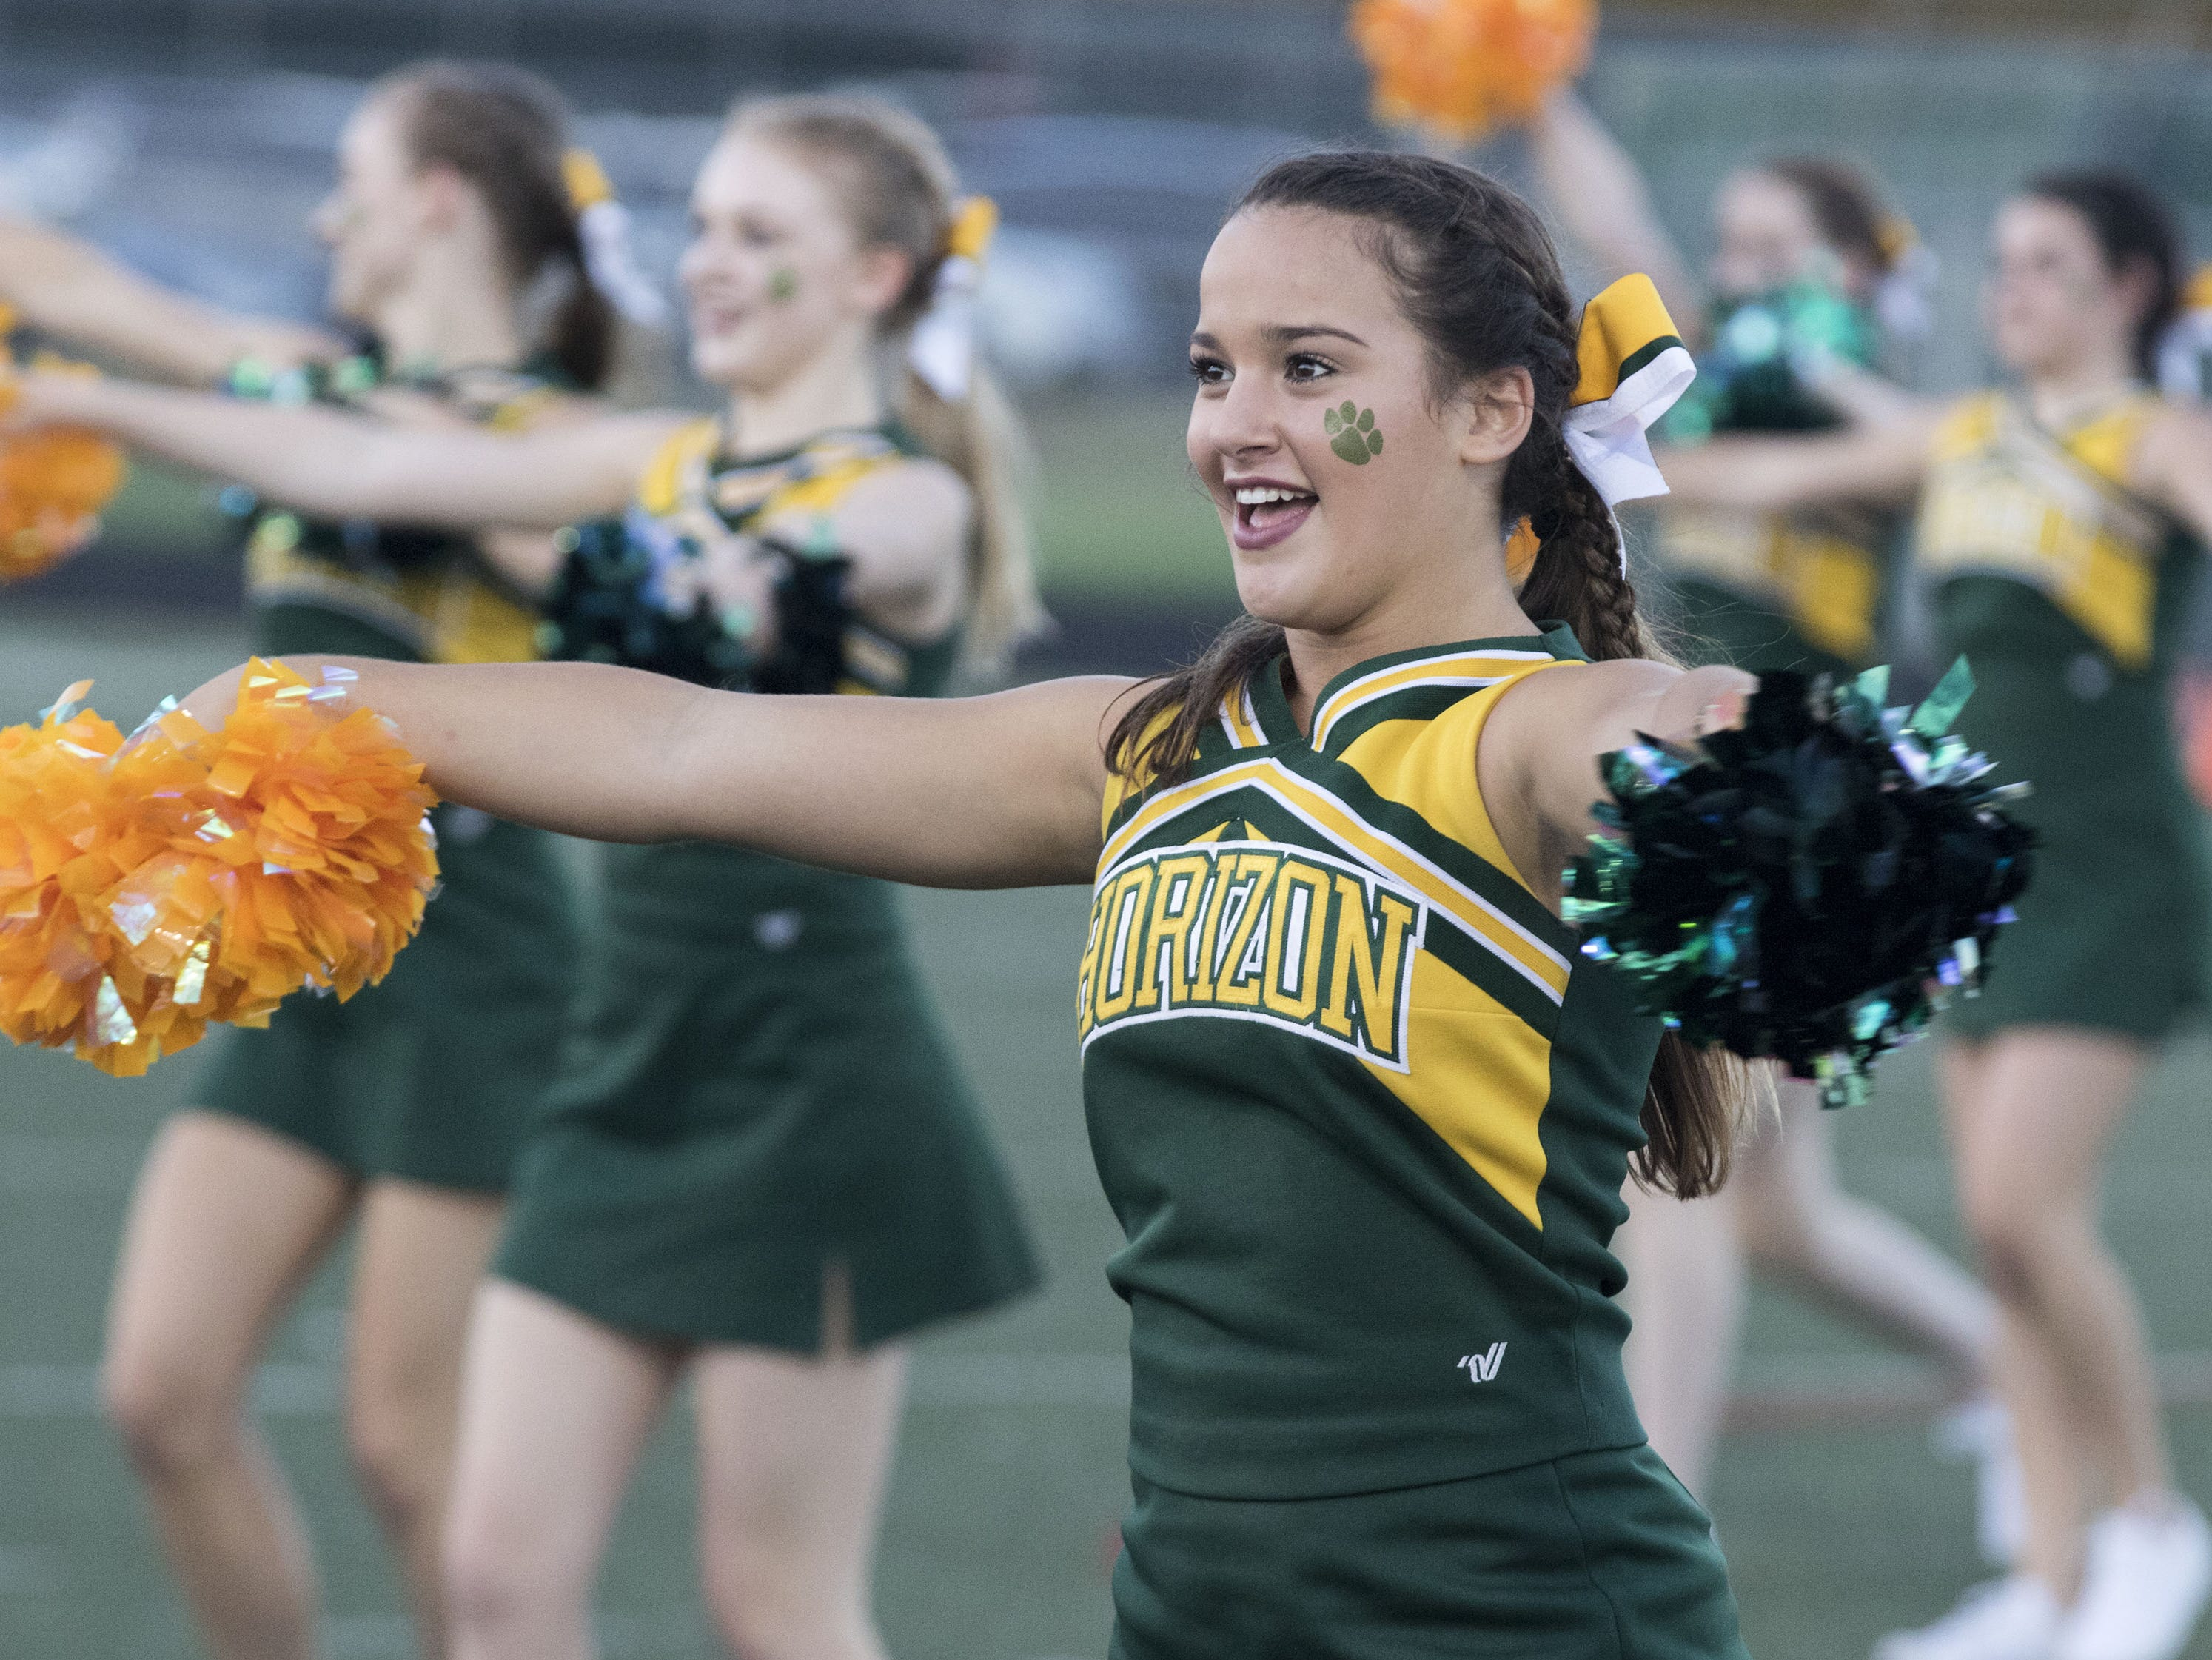 Horizon's cheerleaders entertain the crowd before their game with Marana Friday, Aug.17, 2018.